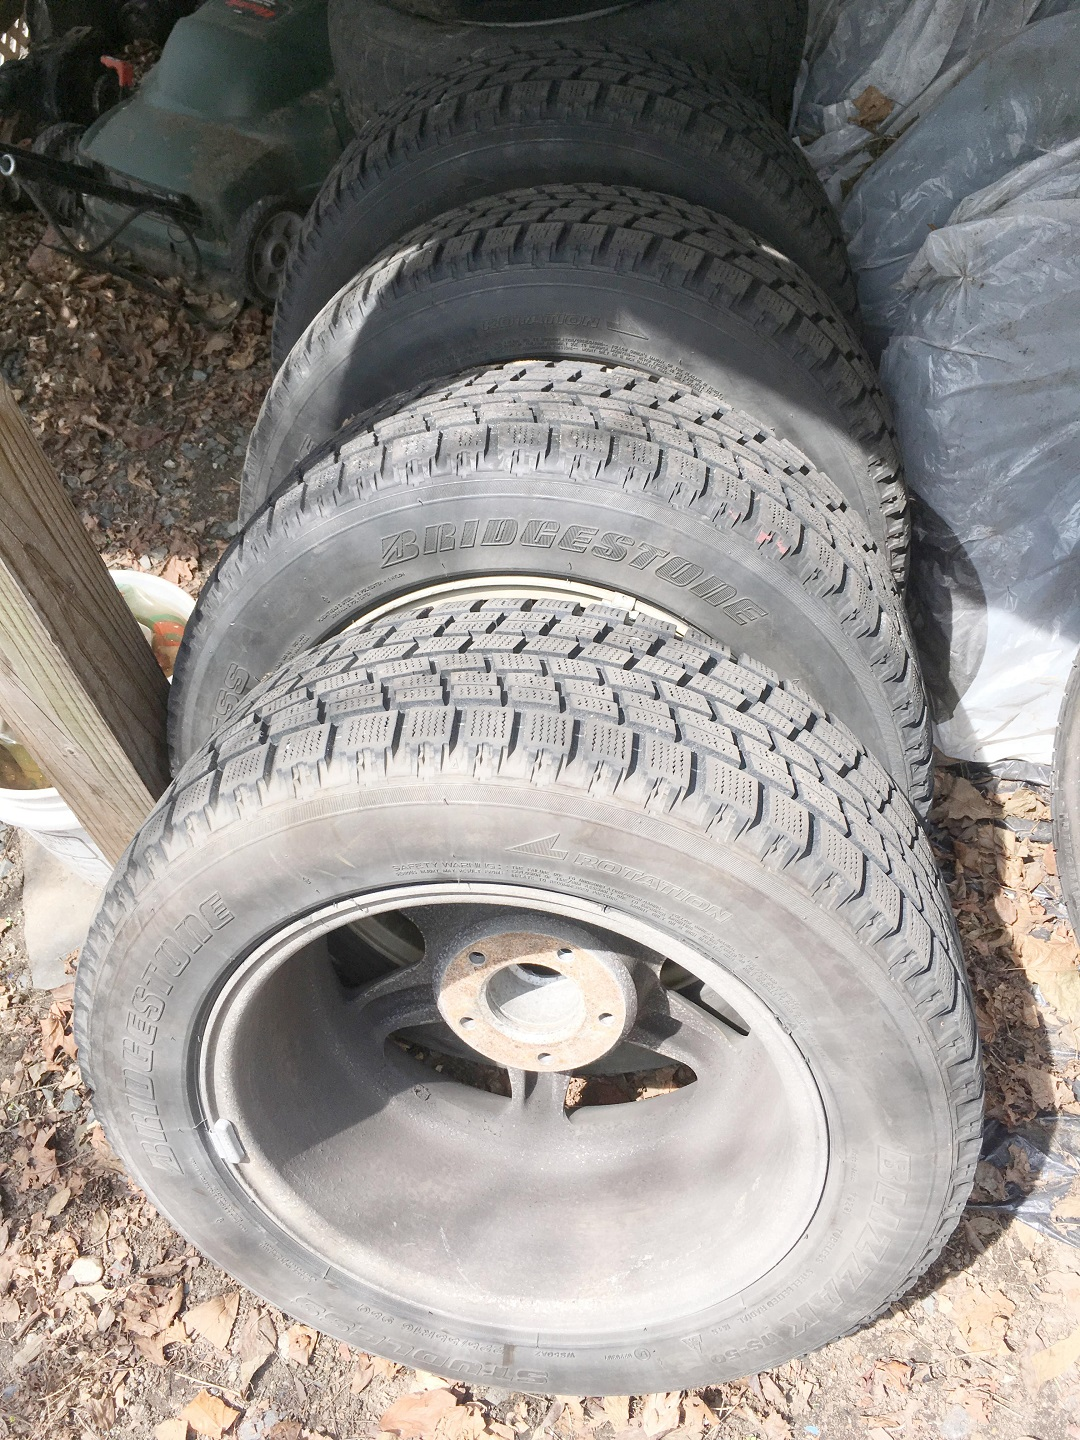 When storing tires outside, vertical is better, as there's much less chance of moisture getting trapped between them. Bagging them or tarping them is even better.